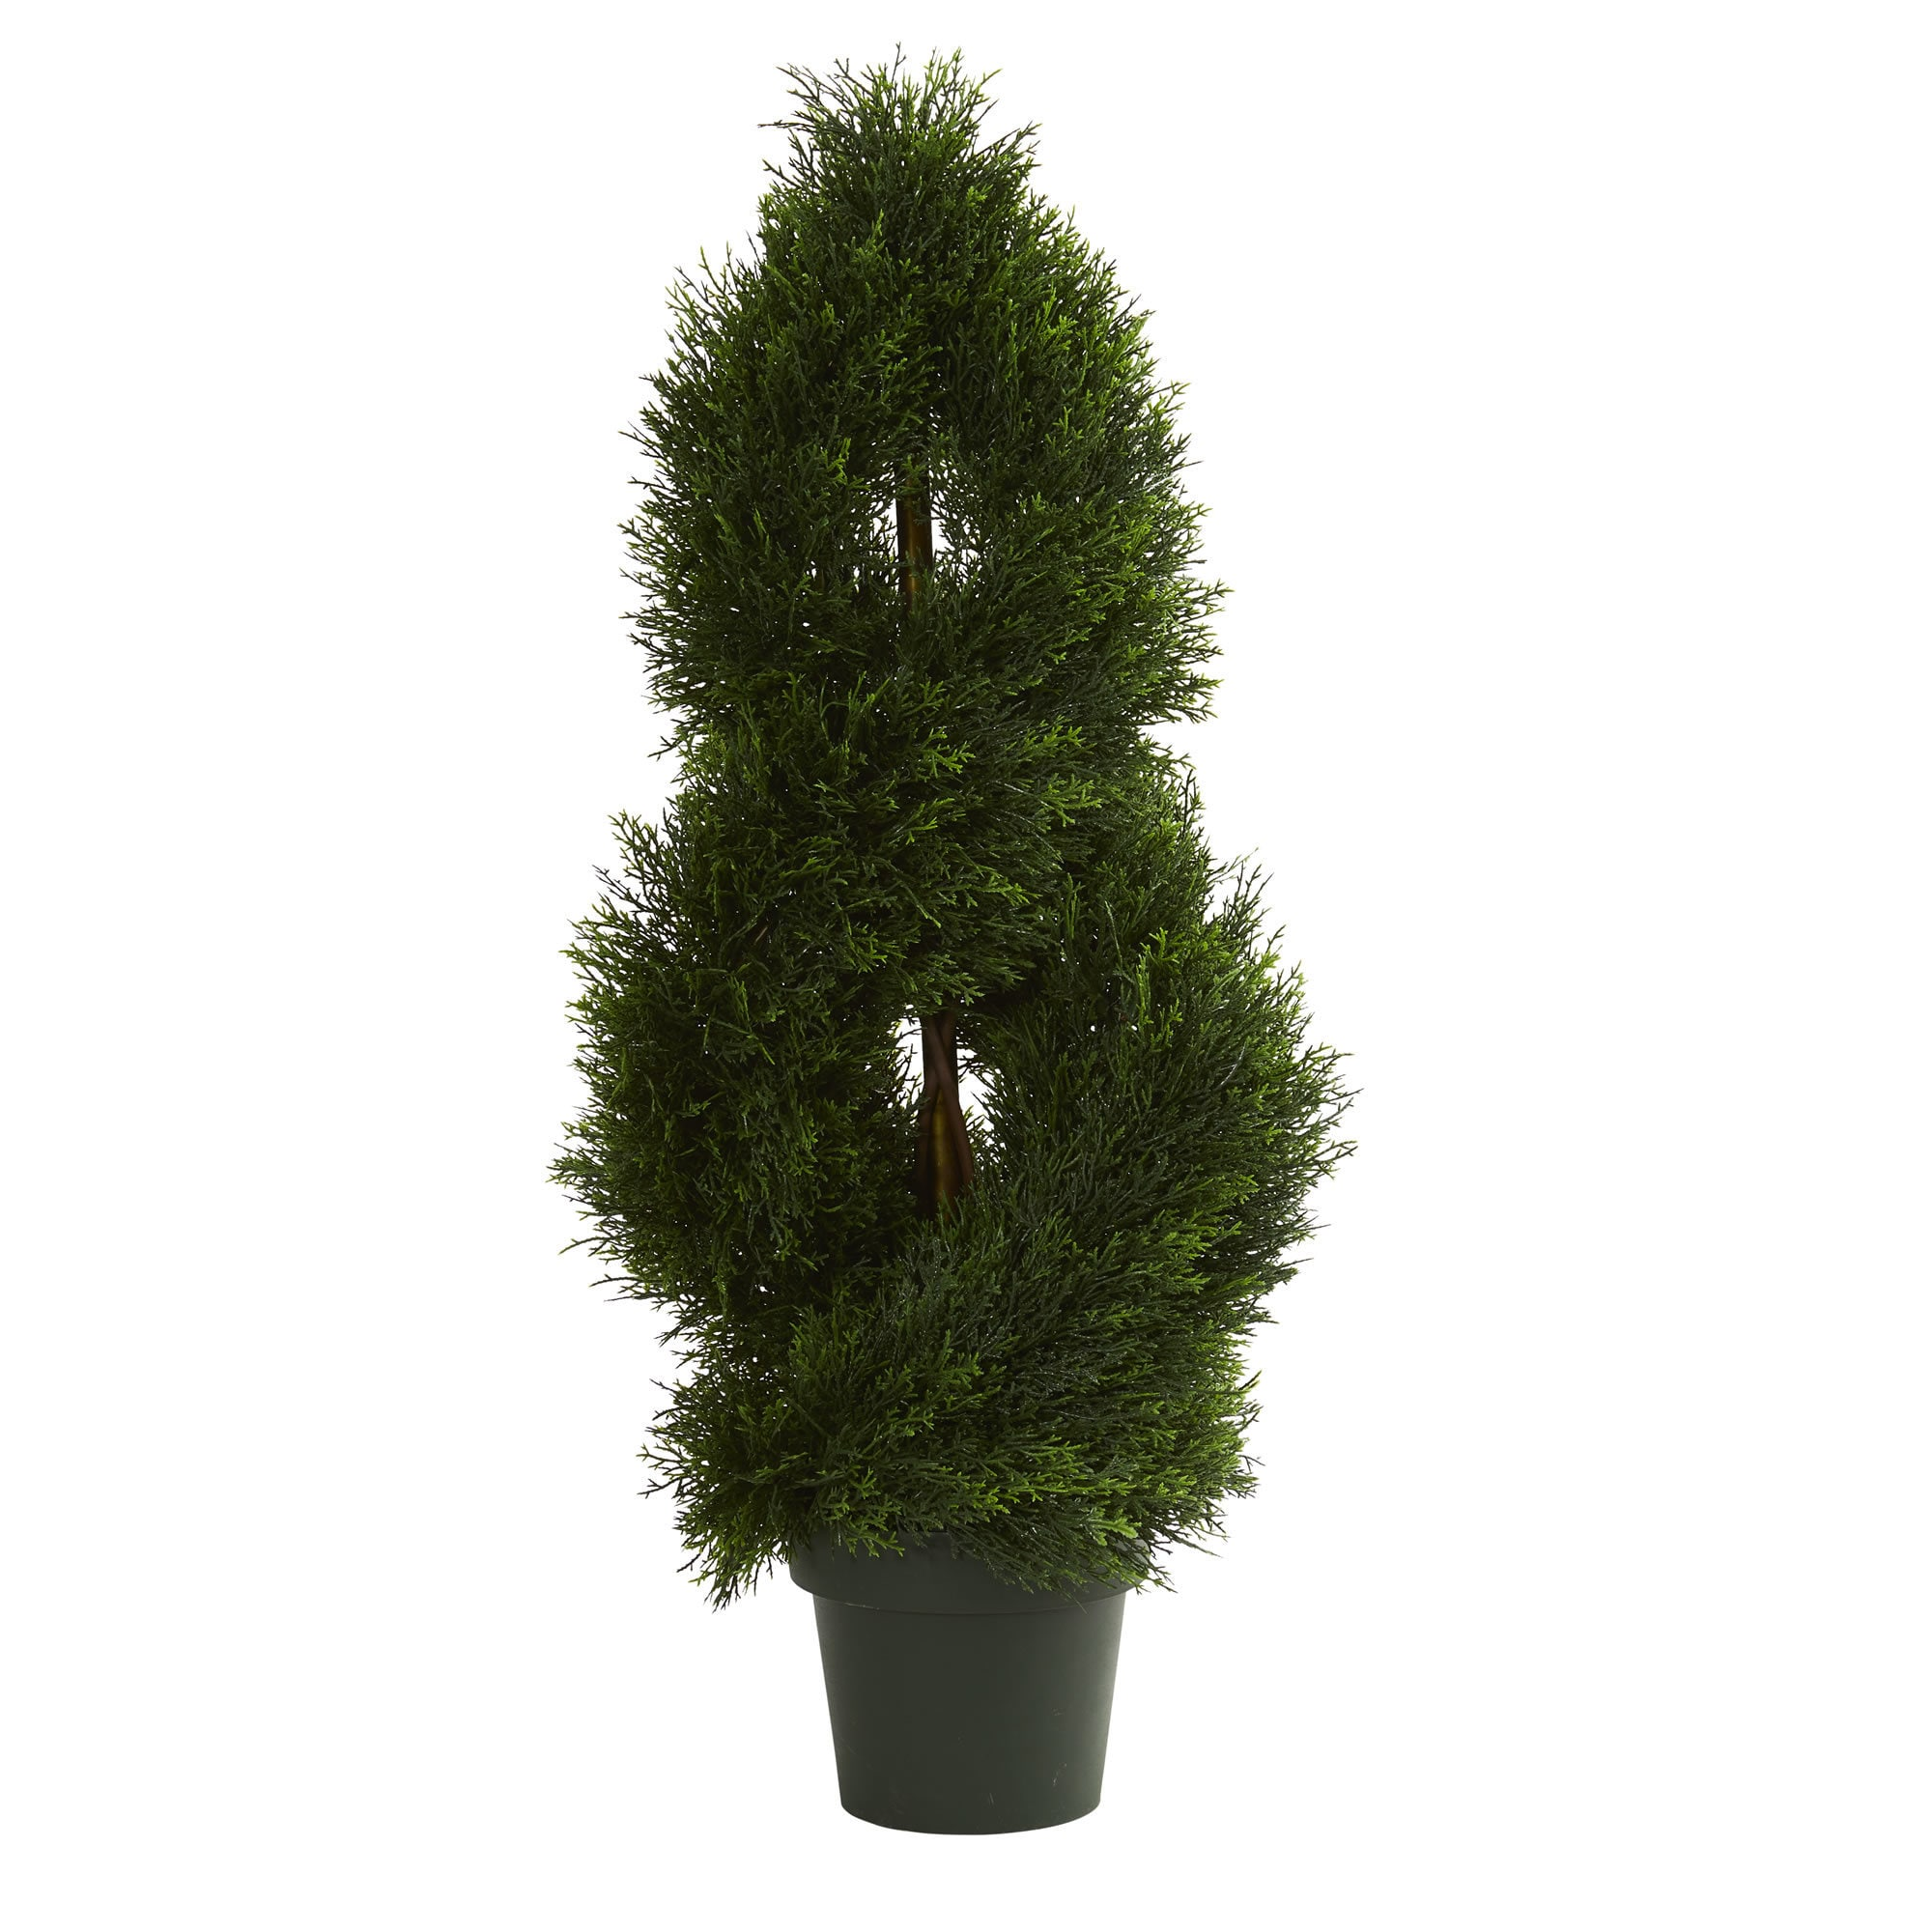 Double Pond Cypress Spiral Artificial Topiary Tree Uv Resistant Indoor Outdoor Free Shipping Today 18688545